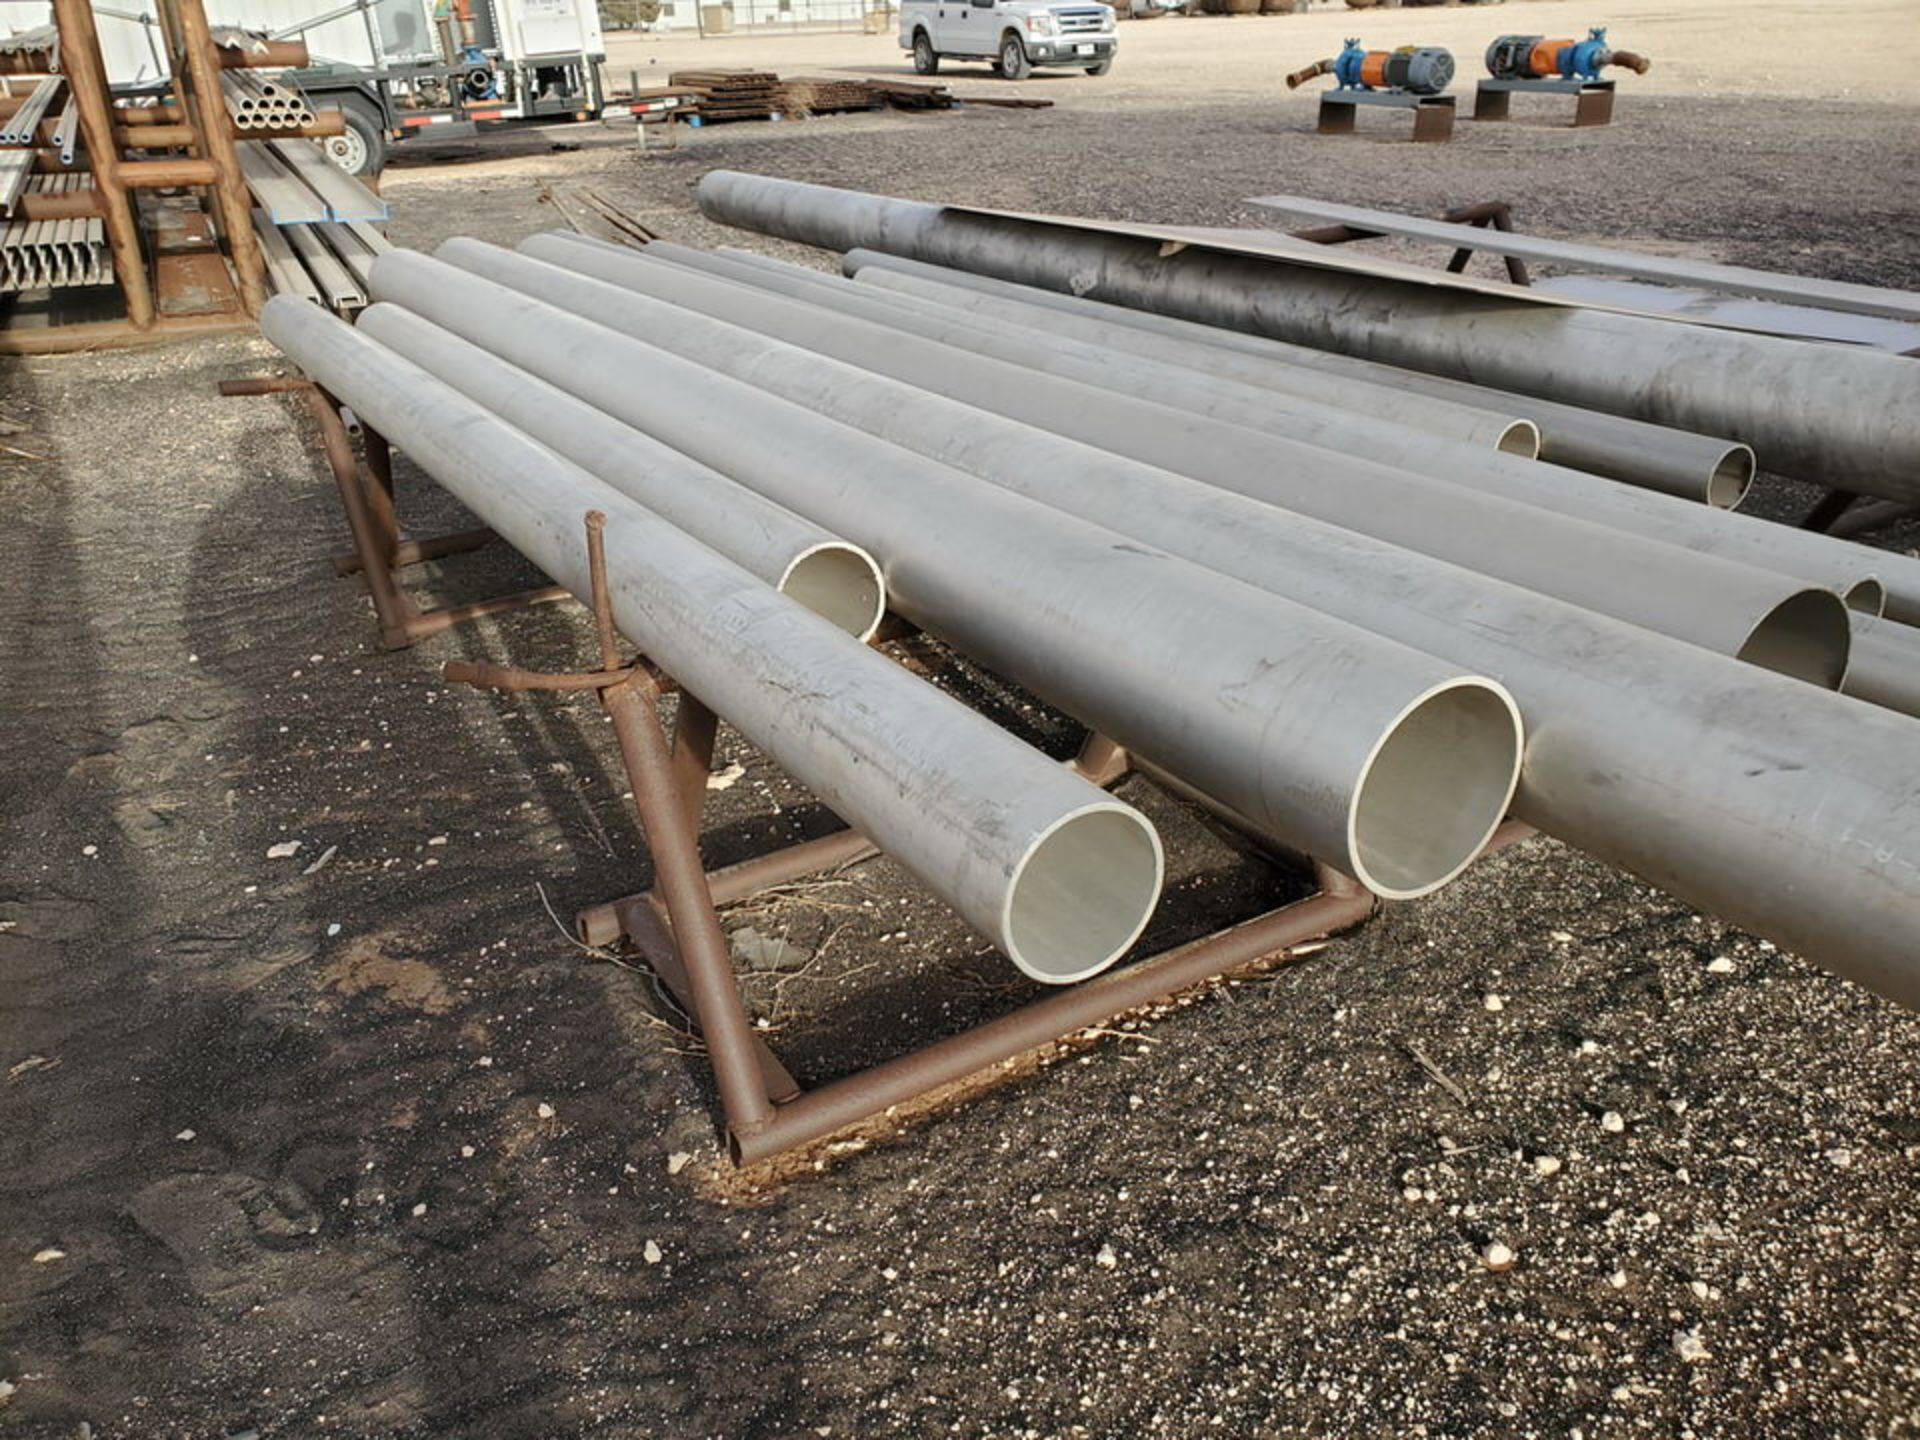 Assorted Matl. To Include But Not Limited To: S/S Flat Bar, Pipe & Sheets (Rack Excluded) - Image 16 of 22